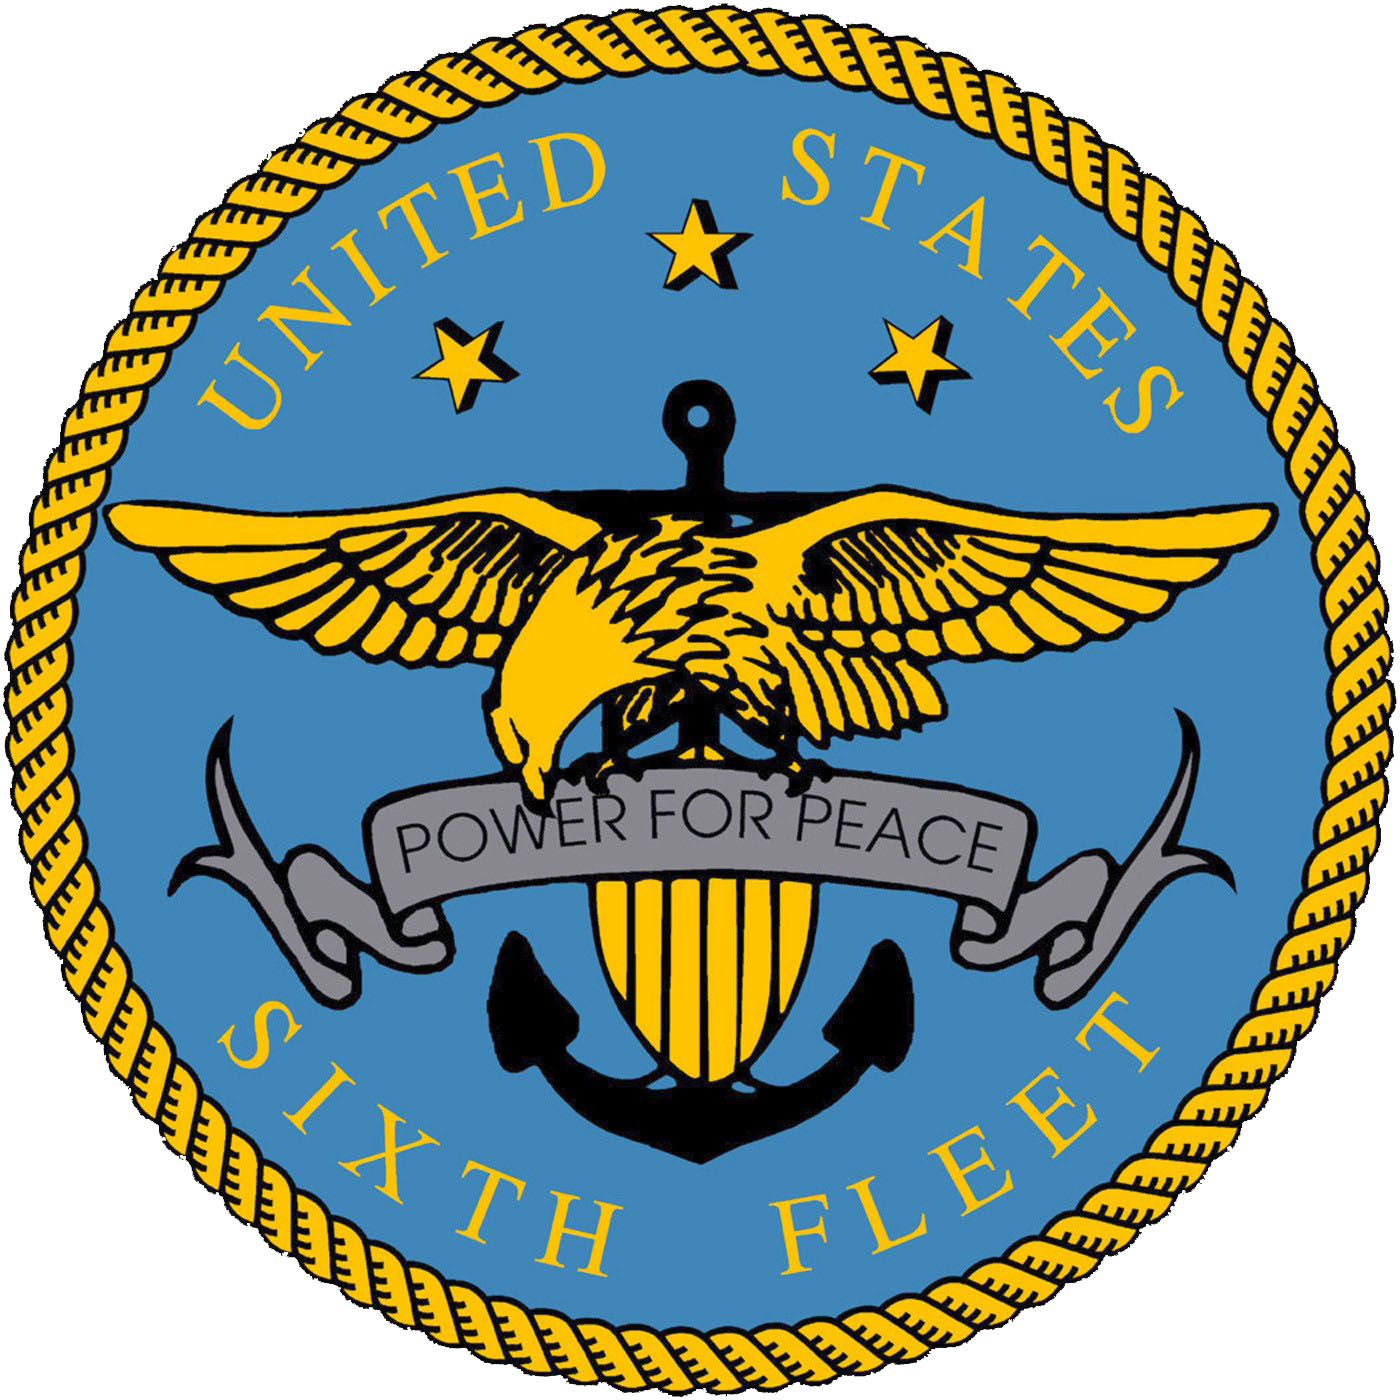 file us sixth fleet logo high resolution version jpg wikimedia commons rh commons wikimedia org us naval academy logo vector us navy anchor logo vector